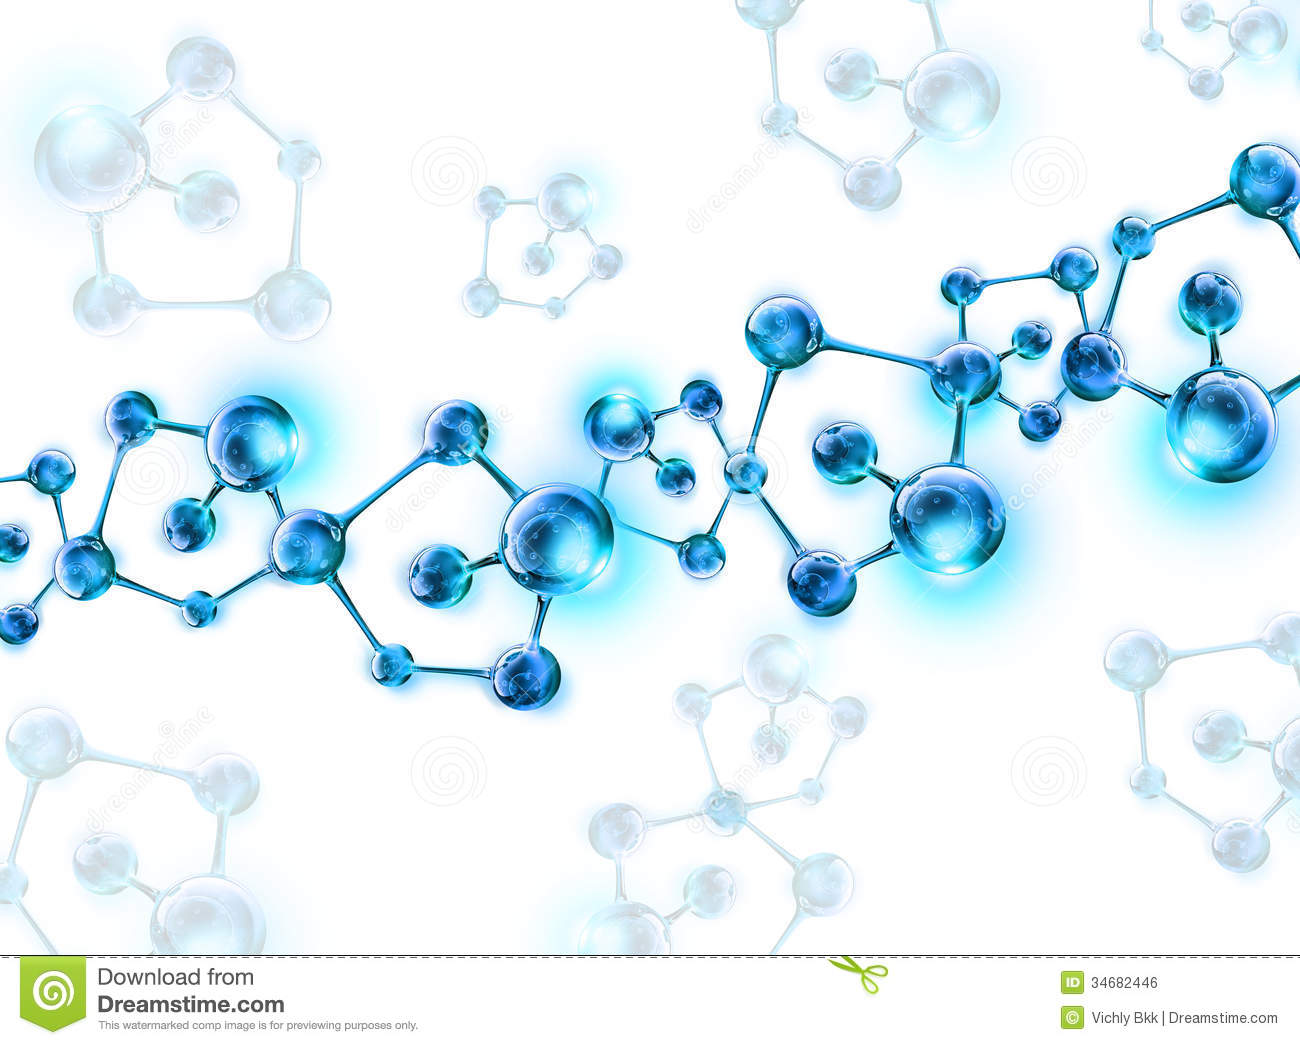 DNA Helix Molecular Background Royalty Free Stock Image - Image ...